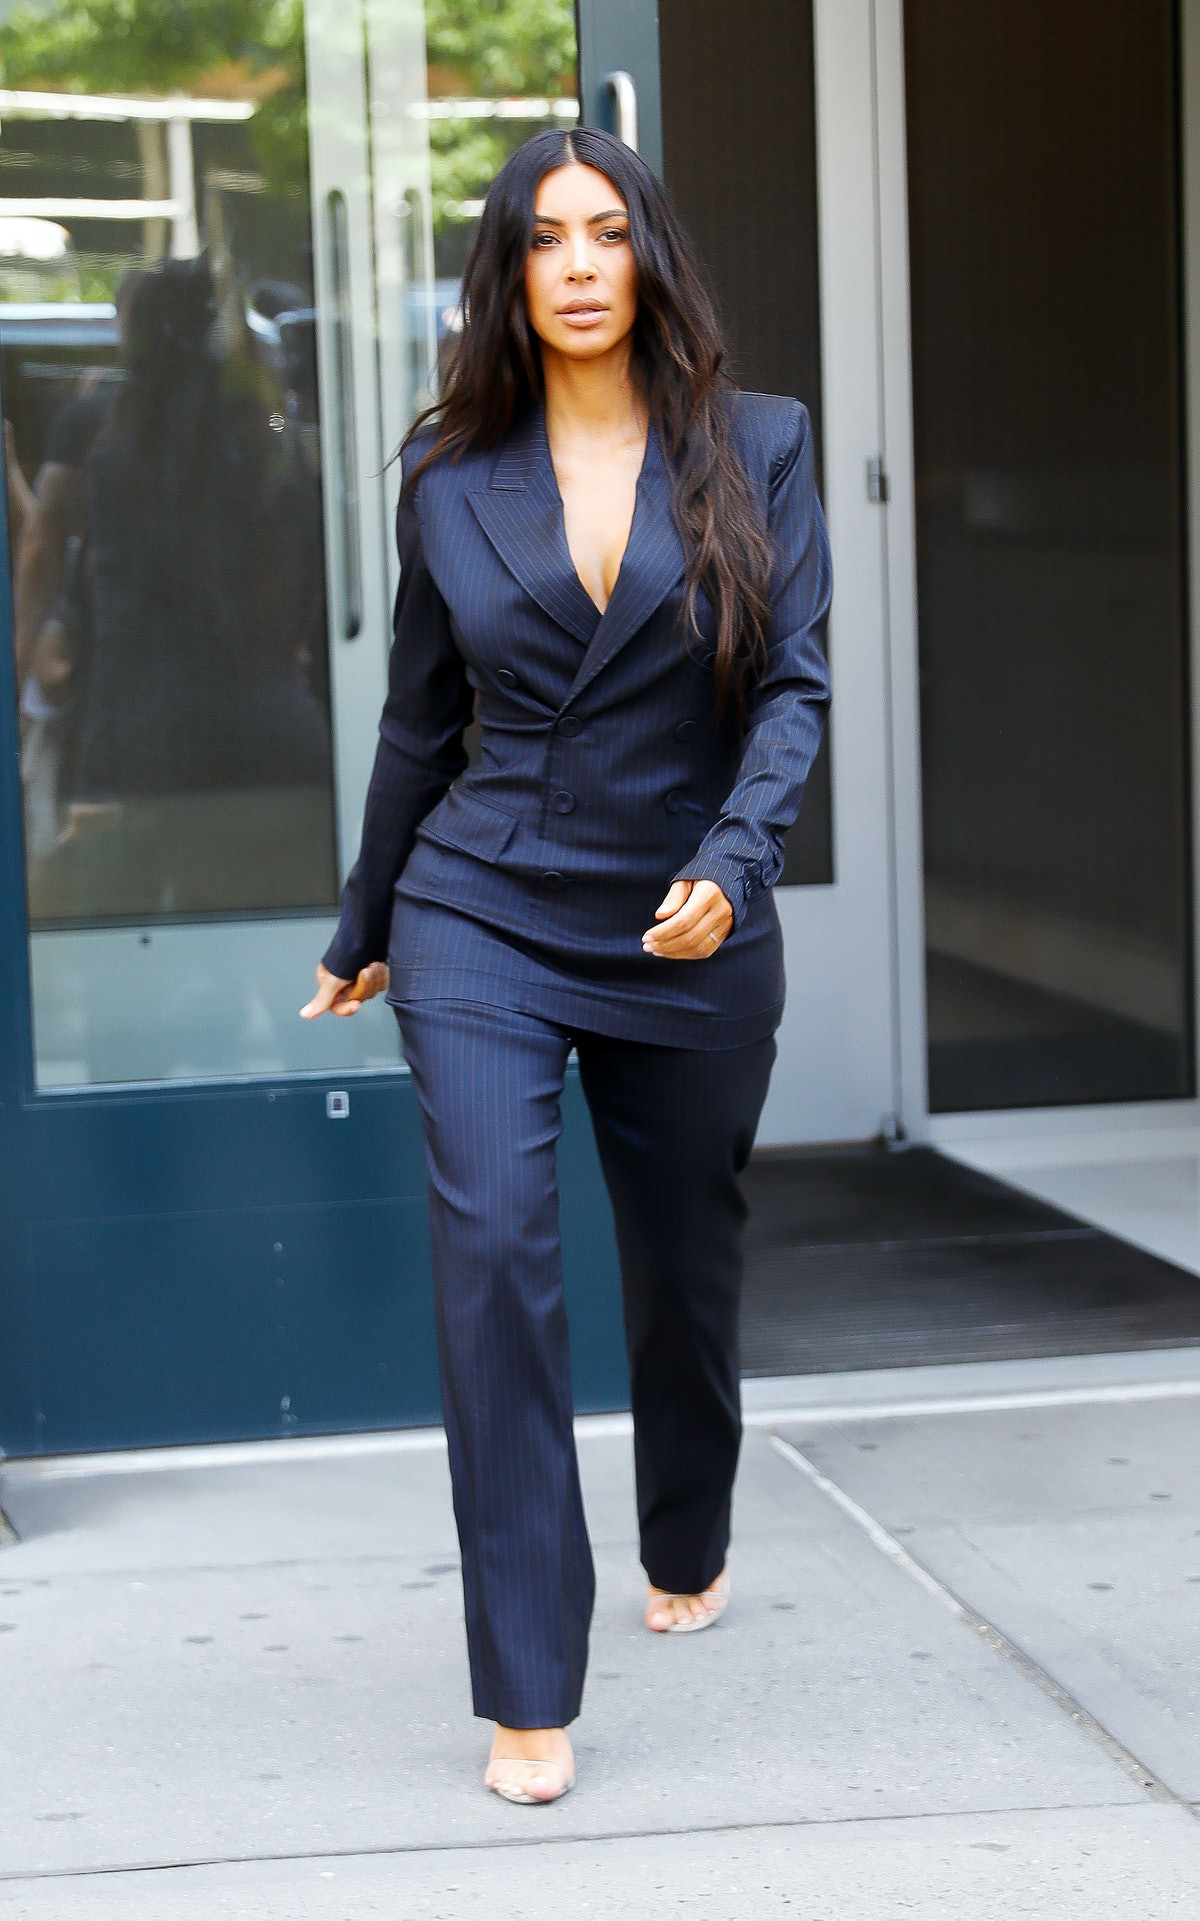 NEW YORK, NY - JUNE 13: Kim Kardashian wears a blue pinstripe power-suit to attend the Forbes Women'sSummit on June 13, 2017 in New York City. (Photo by Gotham/GC Images)